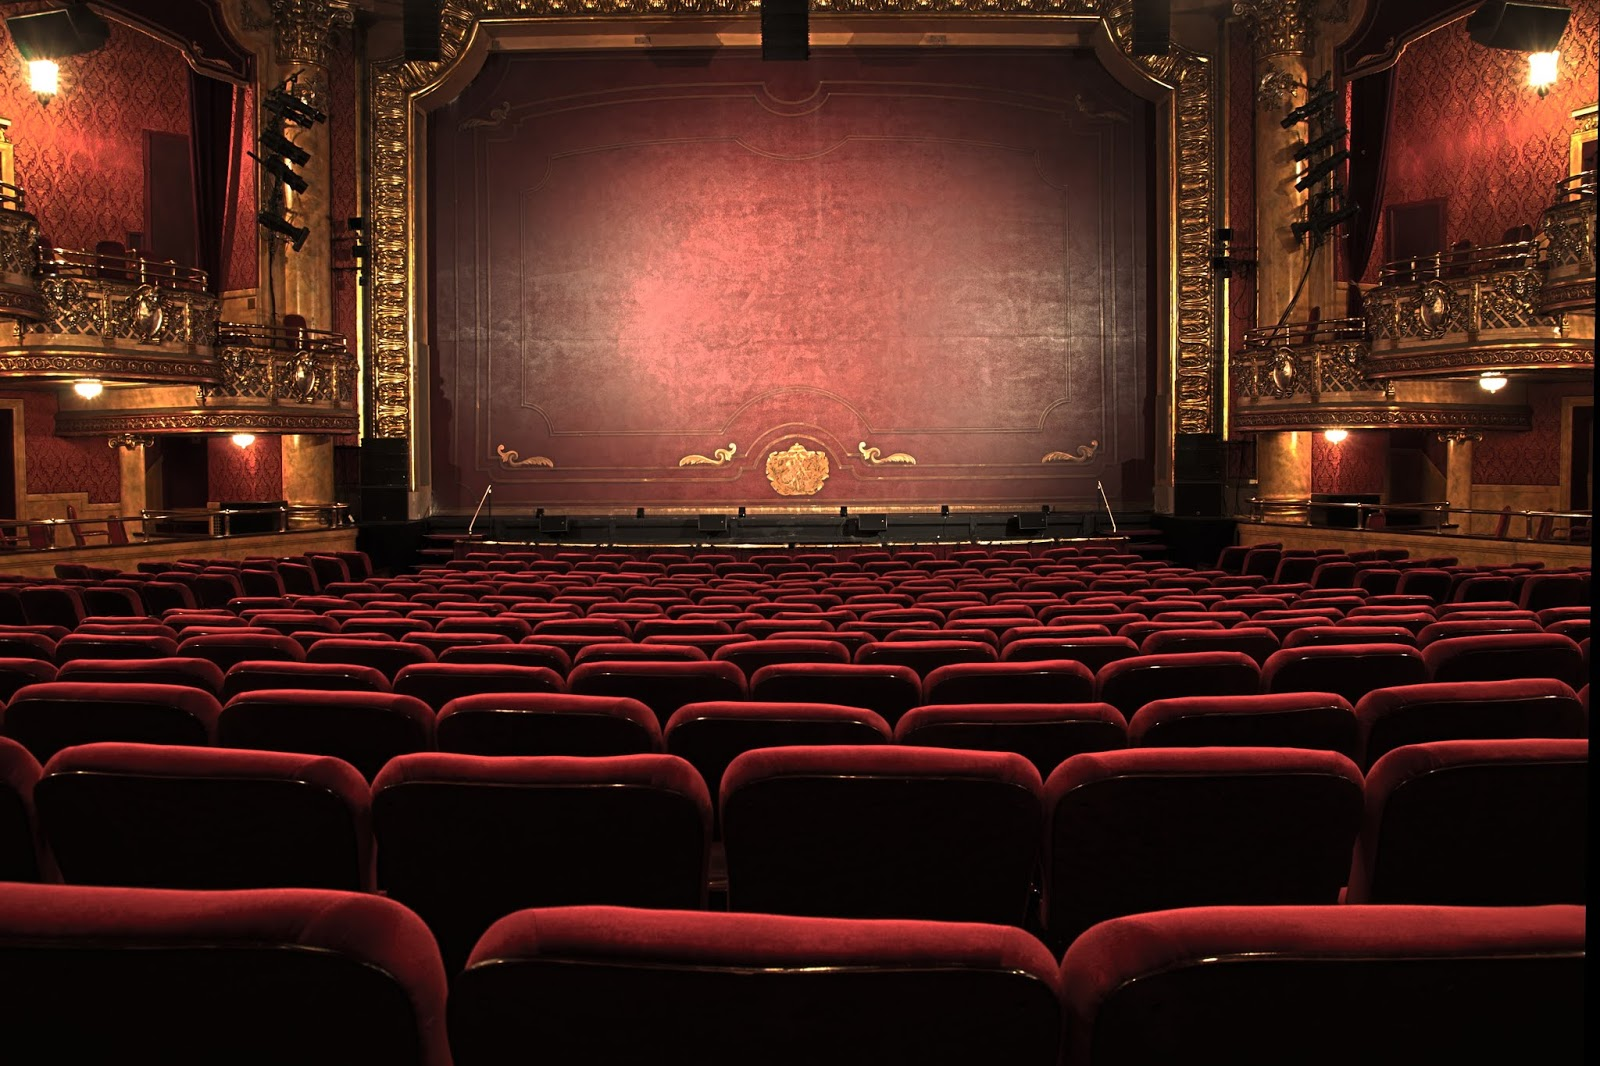 A photo inside a theatre, at the back of the stalls looking over the red seats towards the stage with it's red safetly curtain down